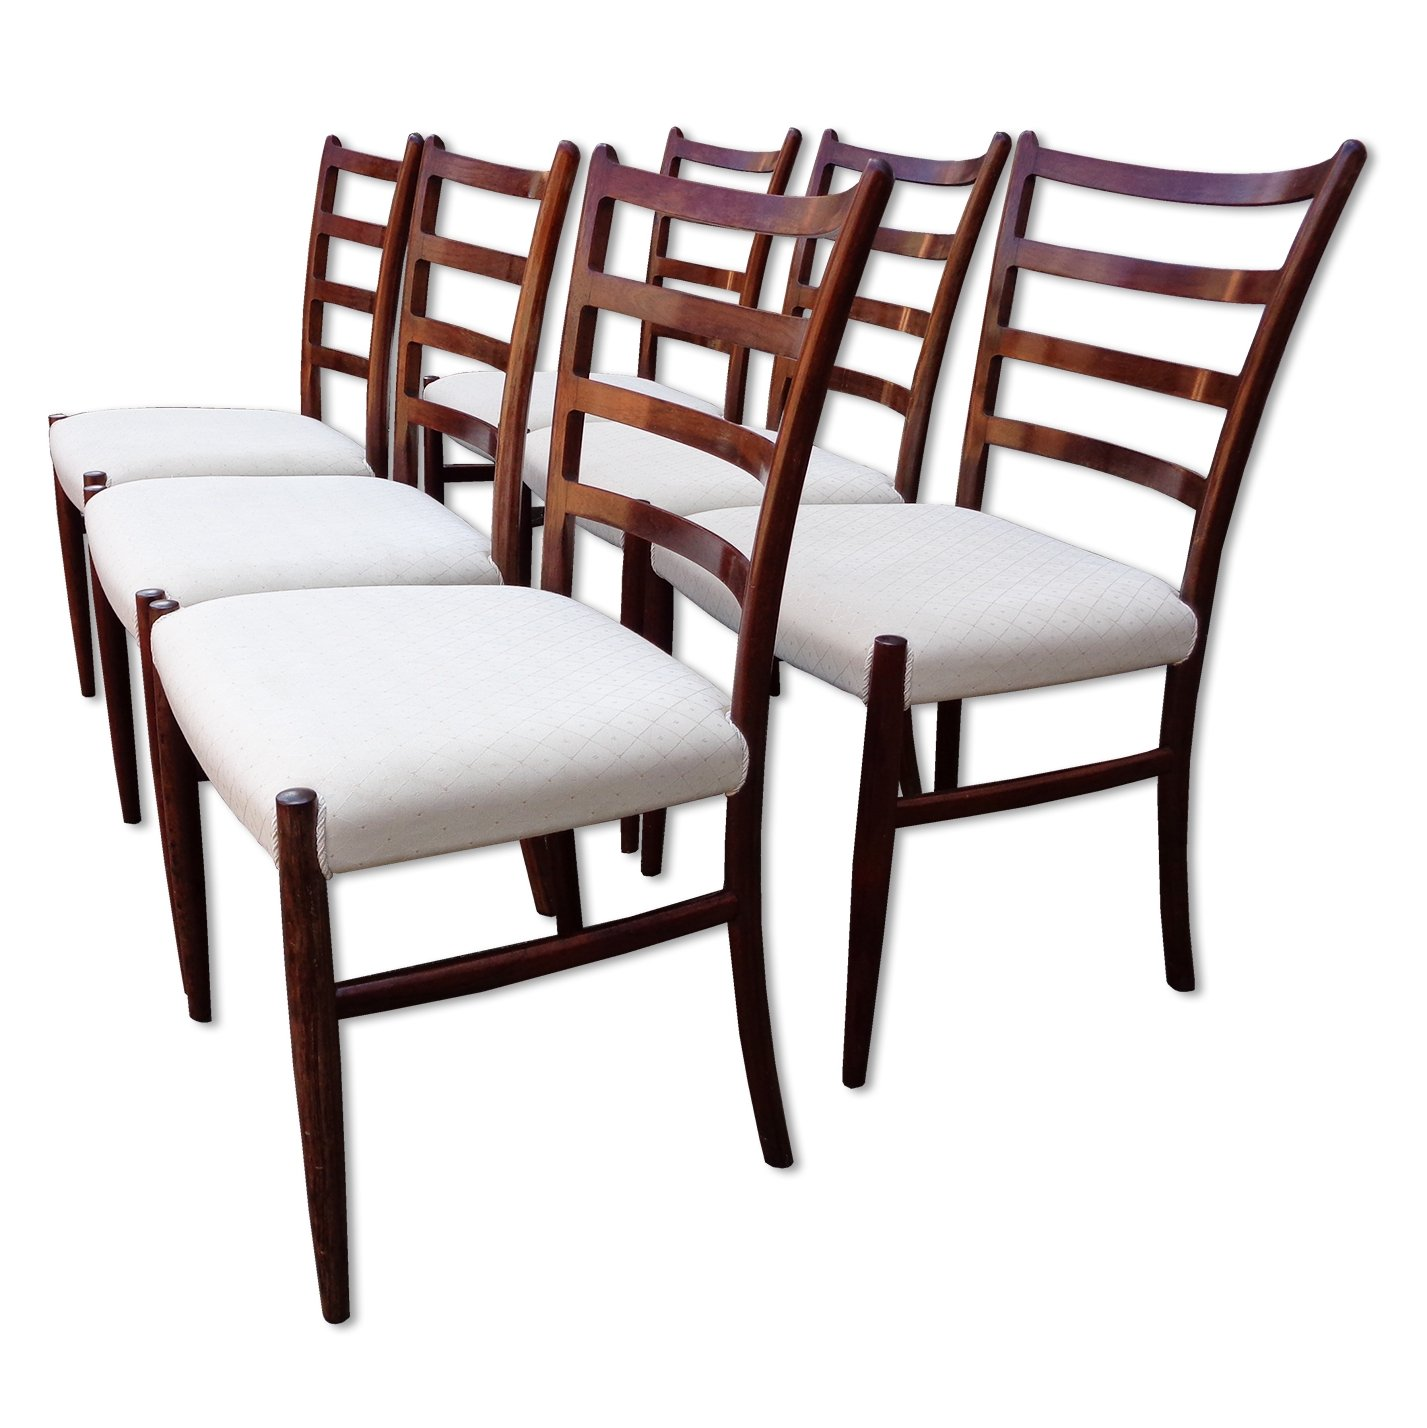 Johannes Andersen 70 Vintage Design Items Dining Chair Ac 113 Set Of 6 Dinner Chairs By For Schou Sva Mbler 1960s